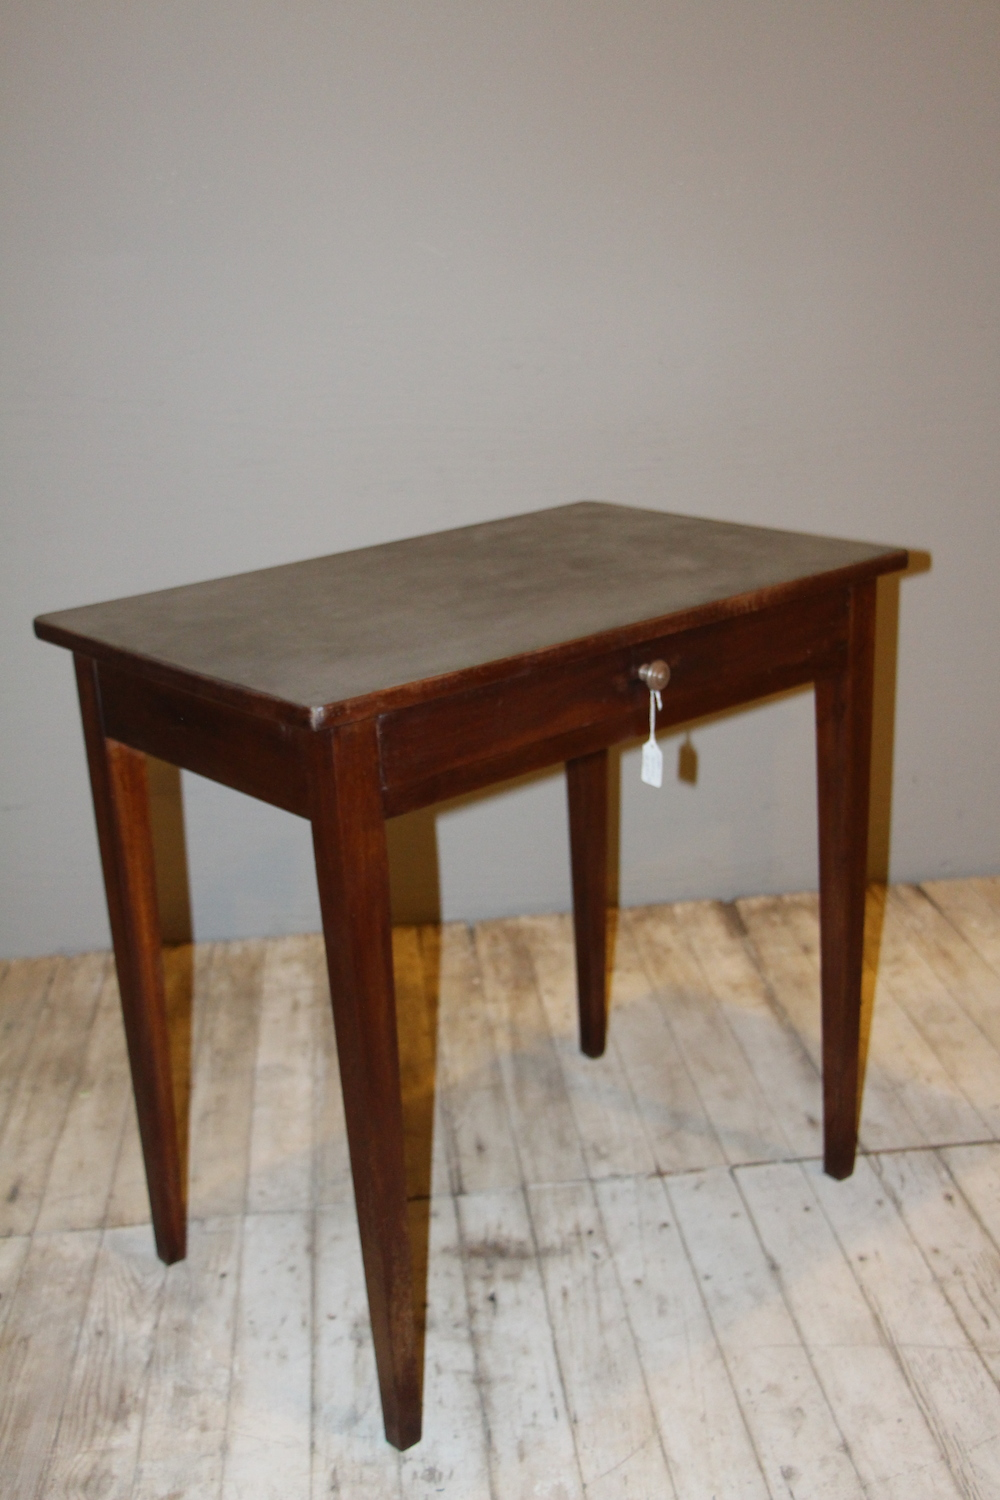 Directoire Table with Silver Top Finish